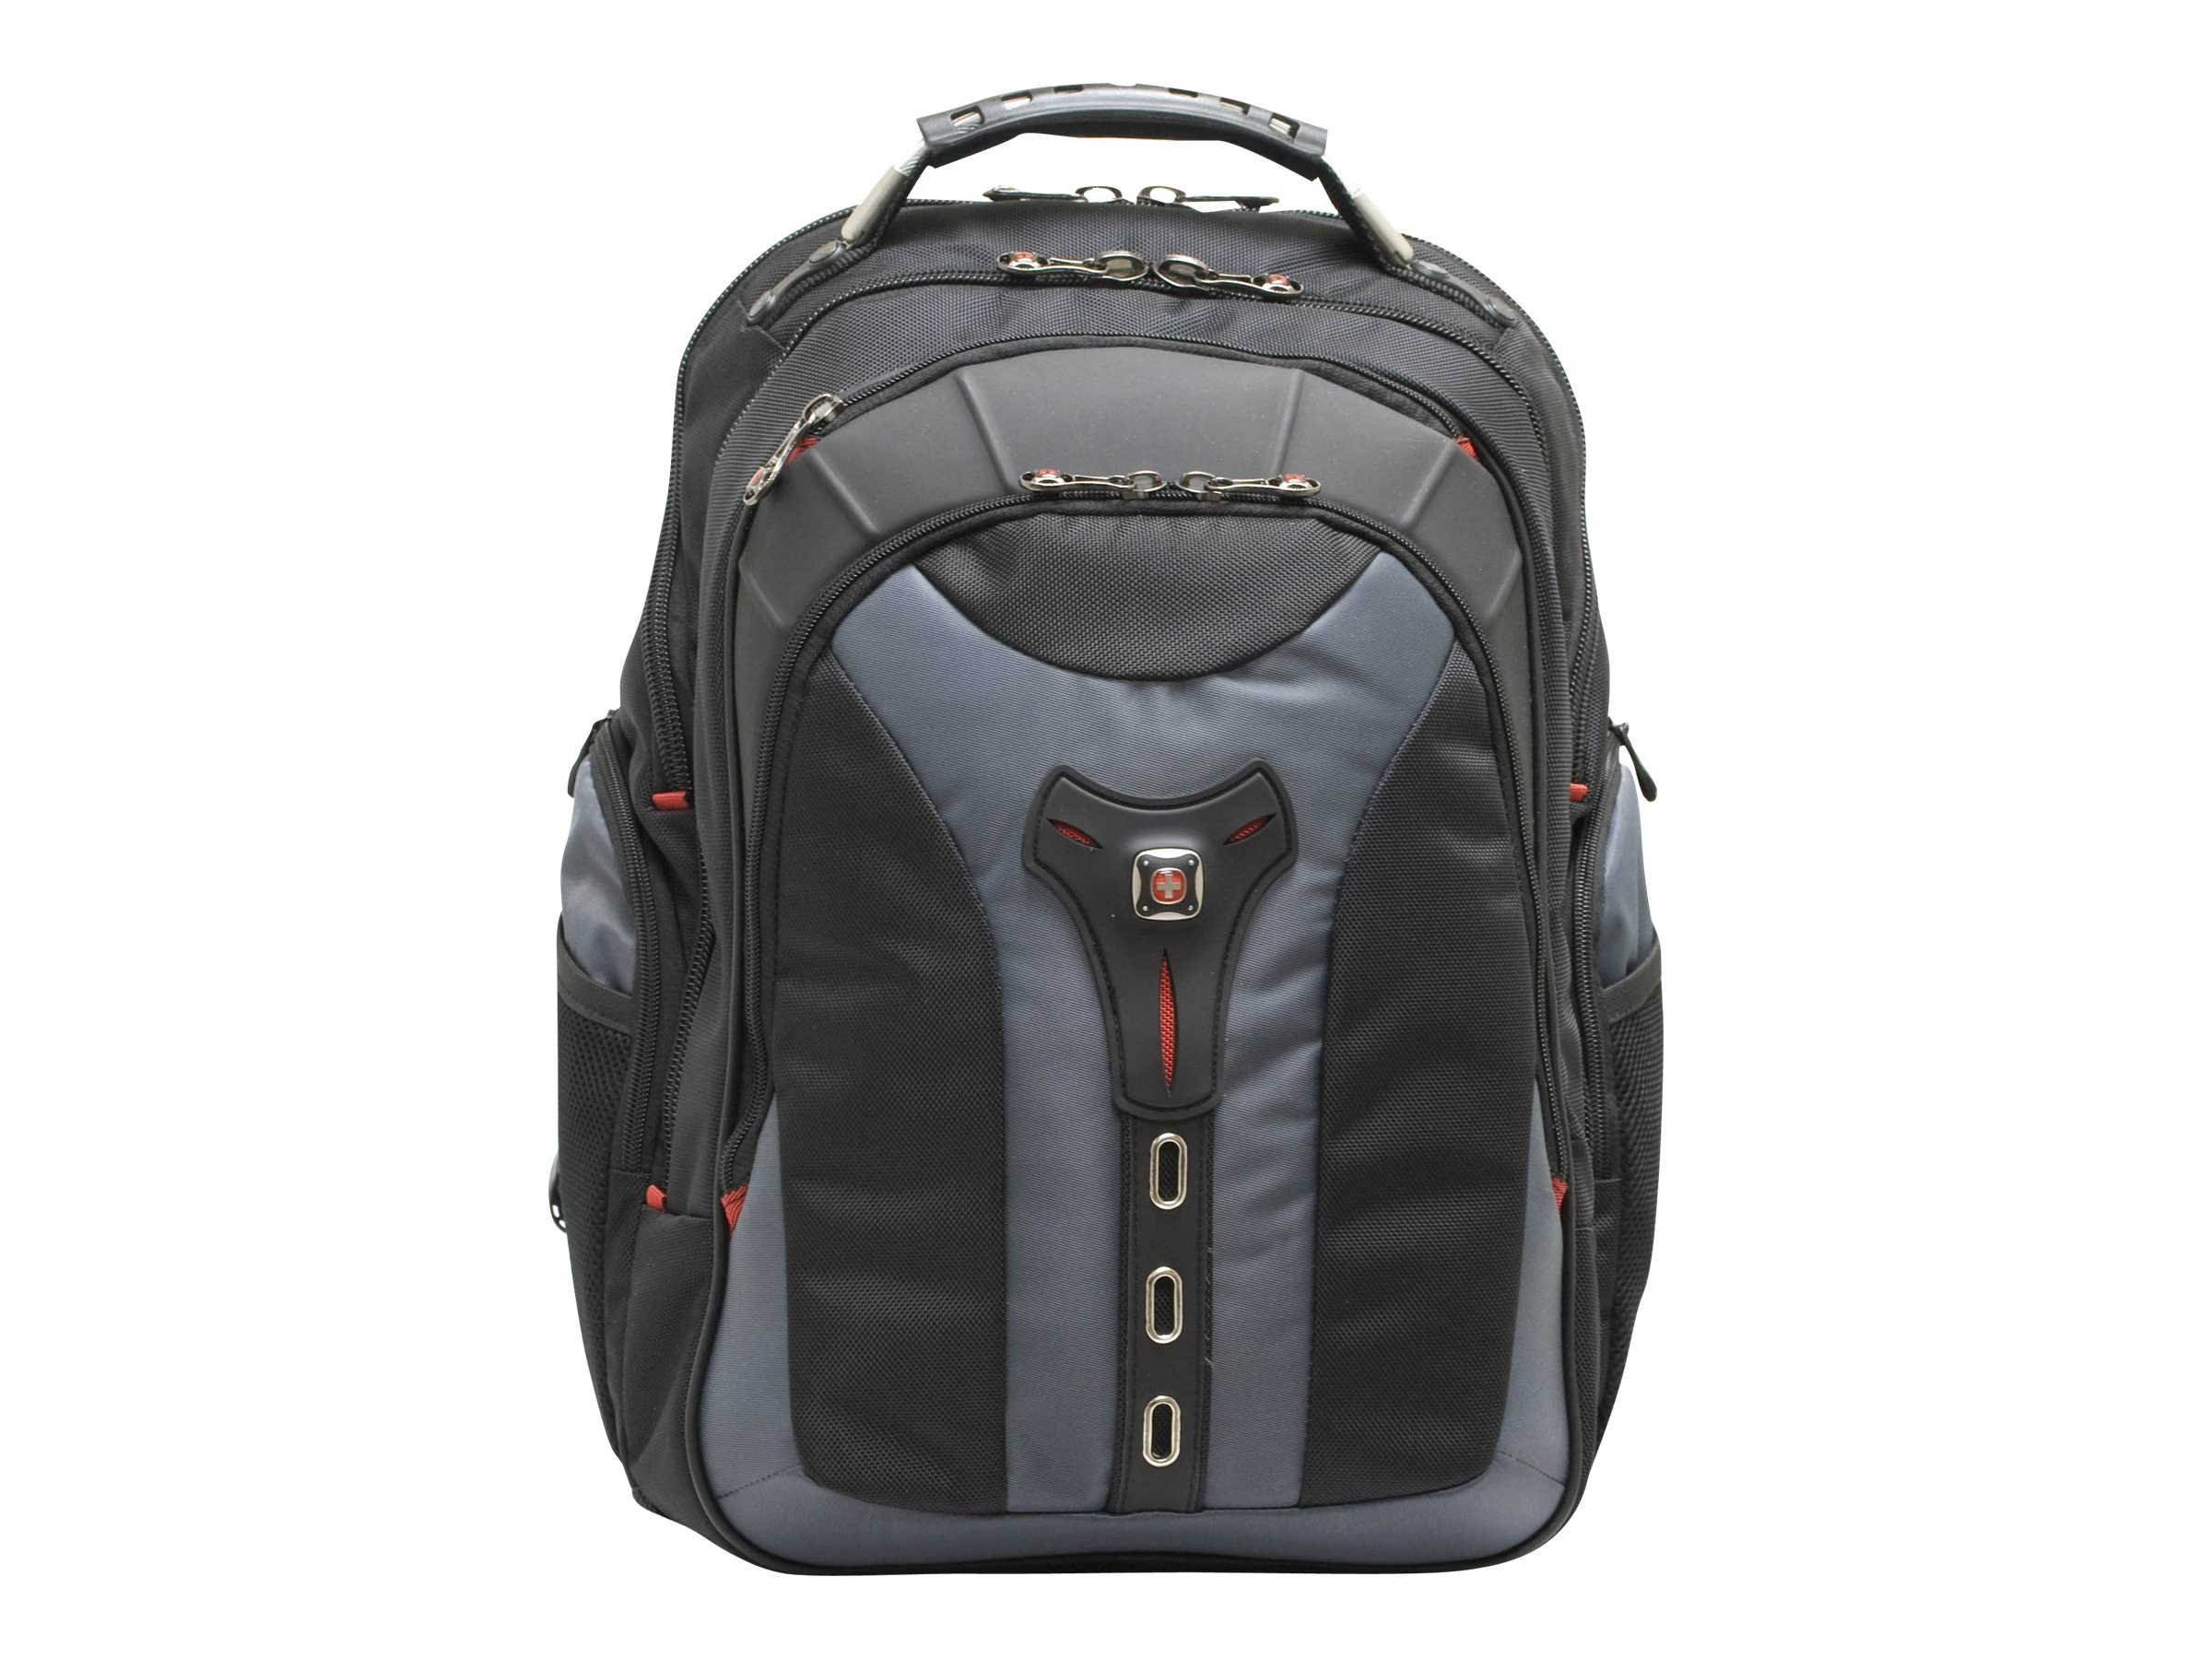 Wenger Pegasus 17 Laptop Backpack, Black Gray